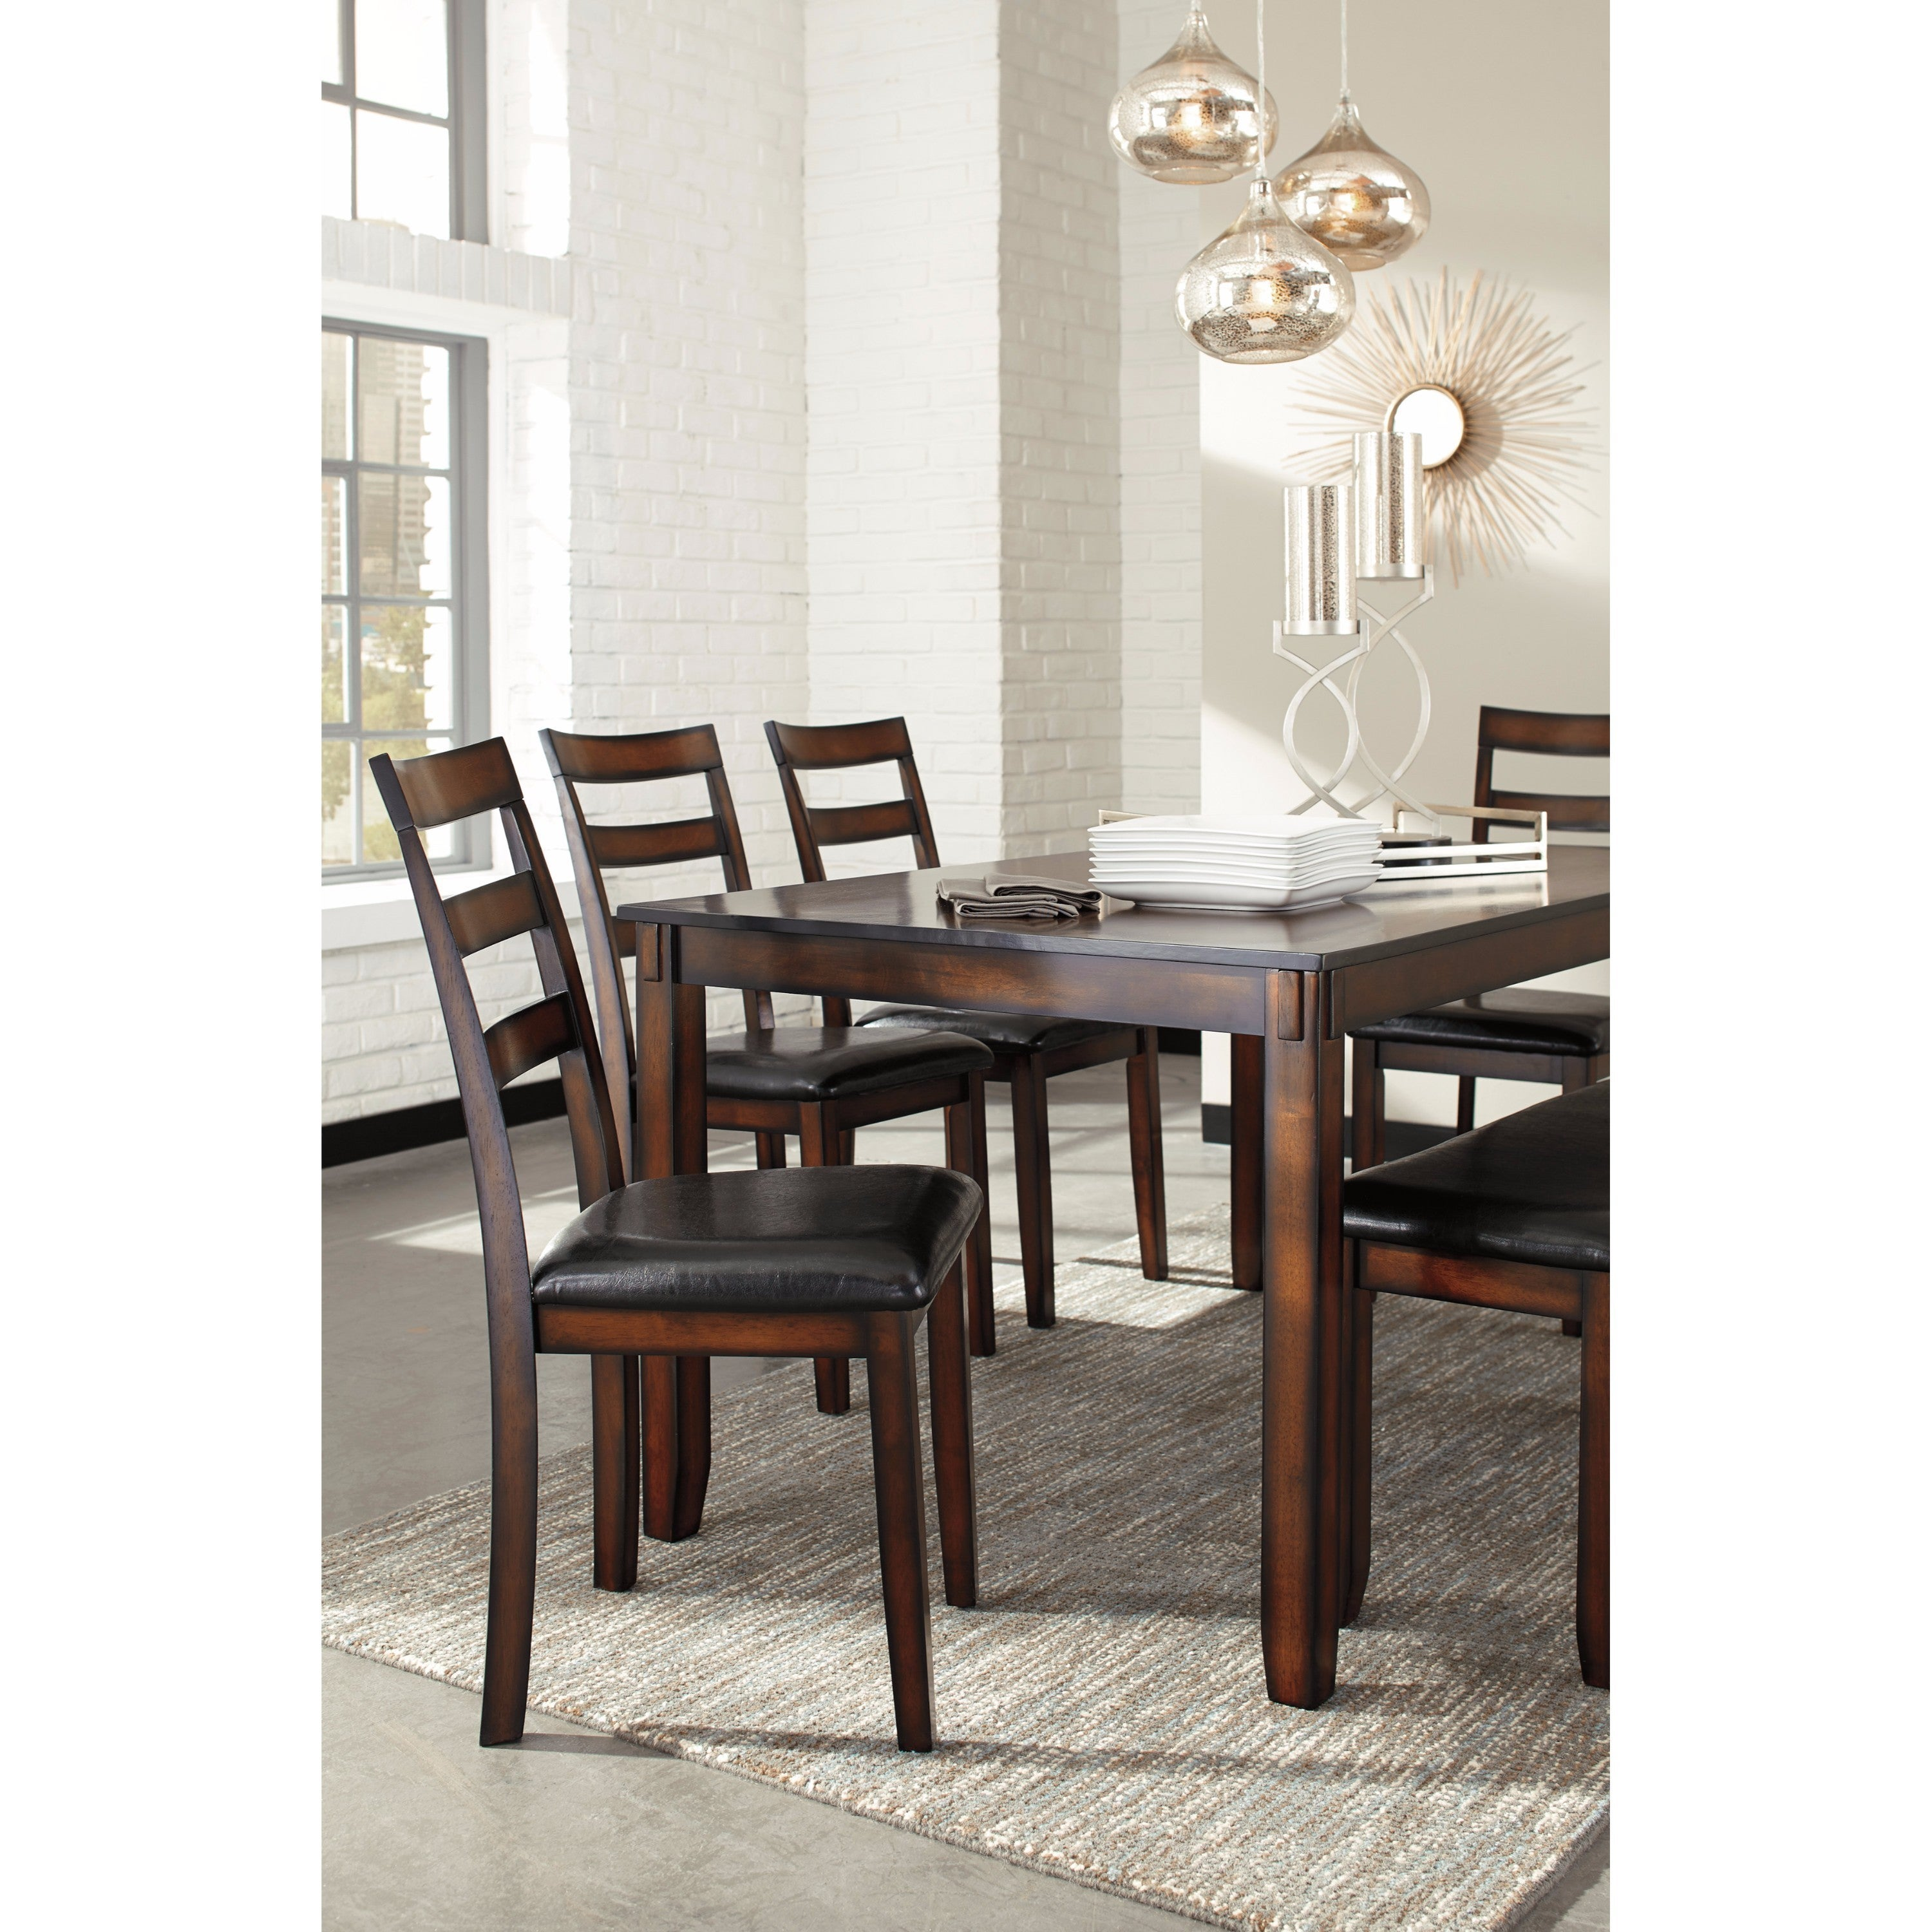 0a4b8b6af0041c Shop Signature Design by Ashley Coviar Brown 6-Piece Dining Room Table Set  - Free Shipping Today - Overstock - 14253499